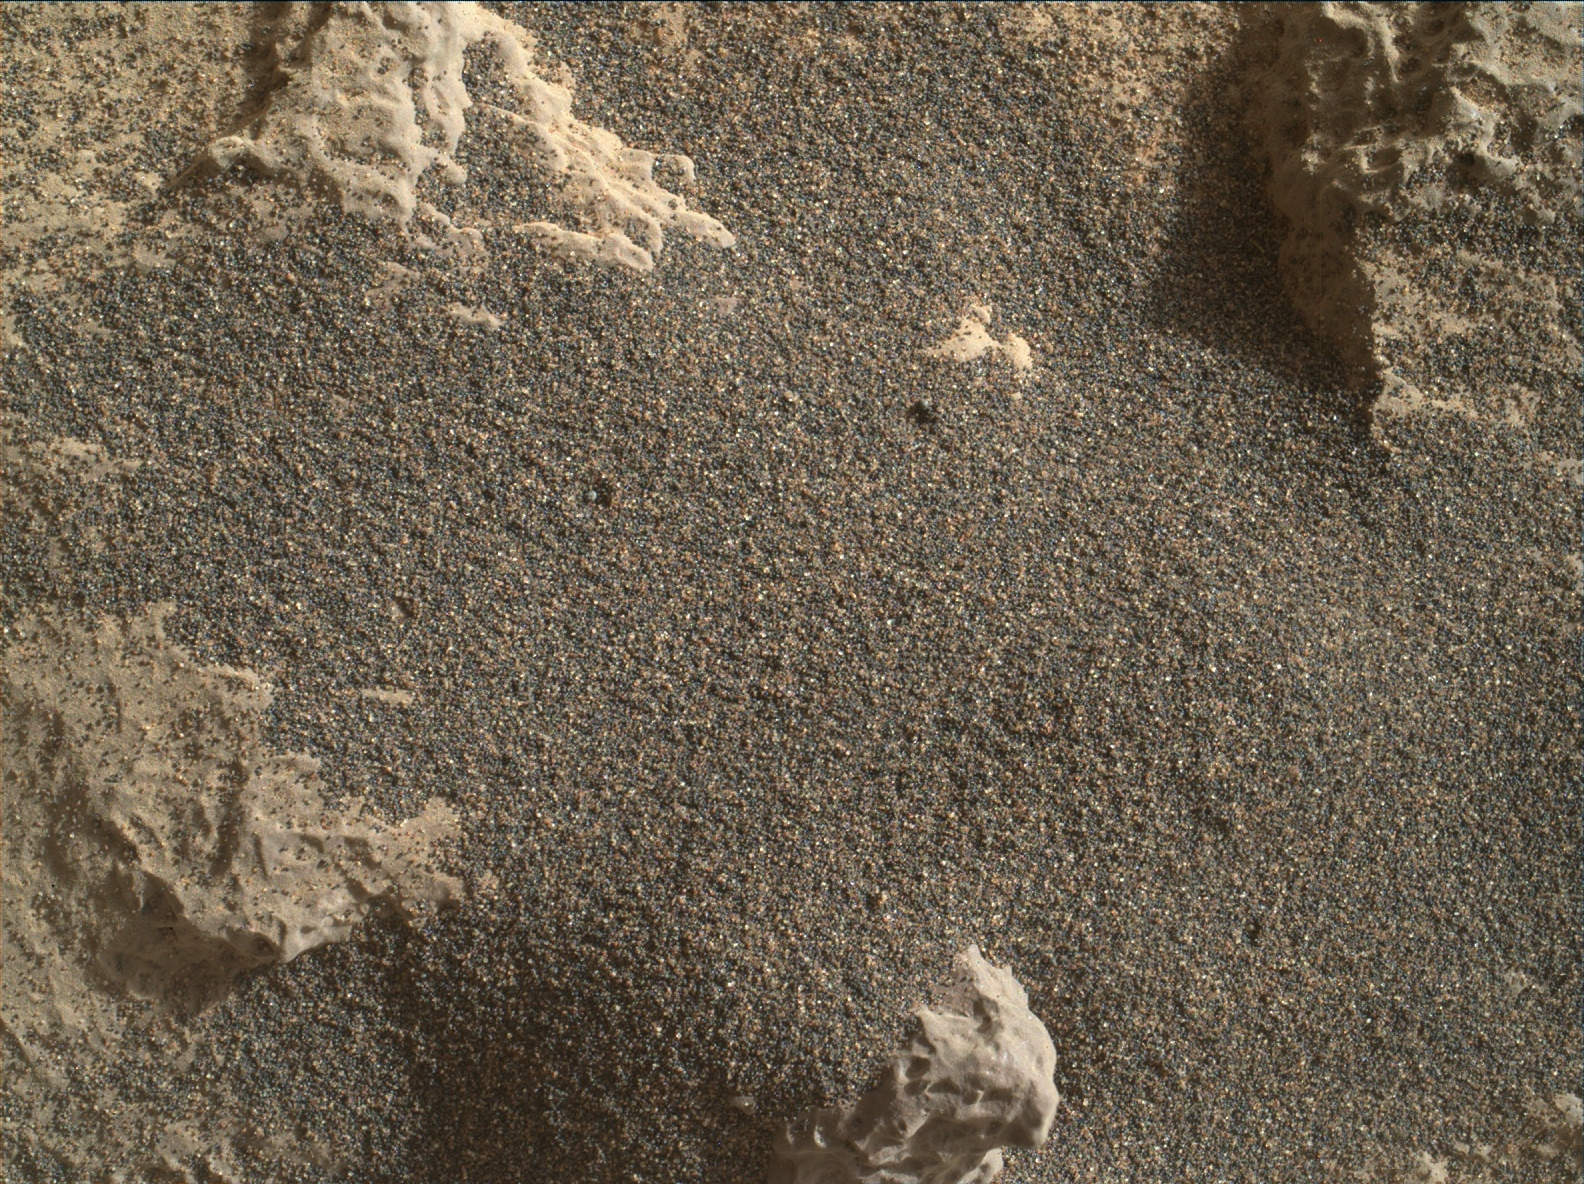 Nasa's Mars rover Curiosity acquired this image using its Mars Hand Lens Imager (MAHLI) on Sol 1253